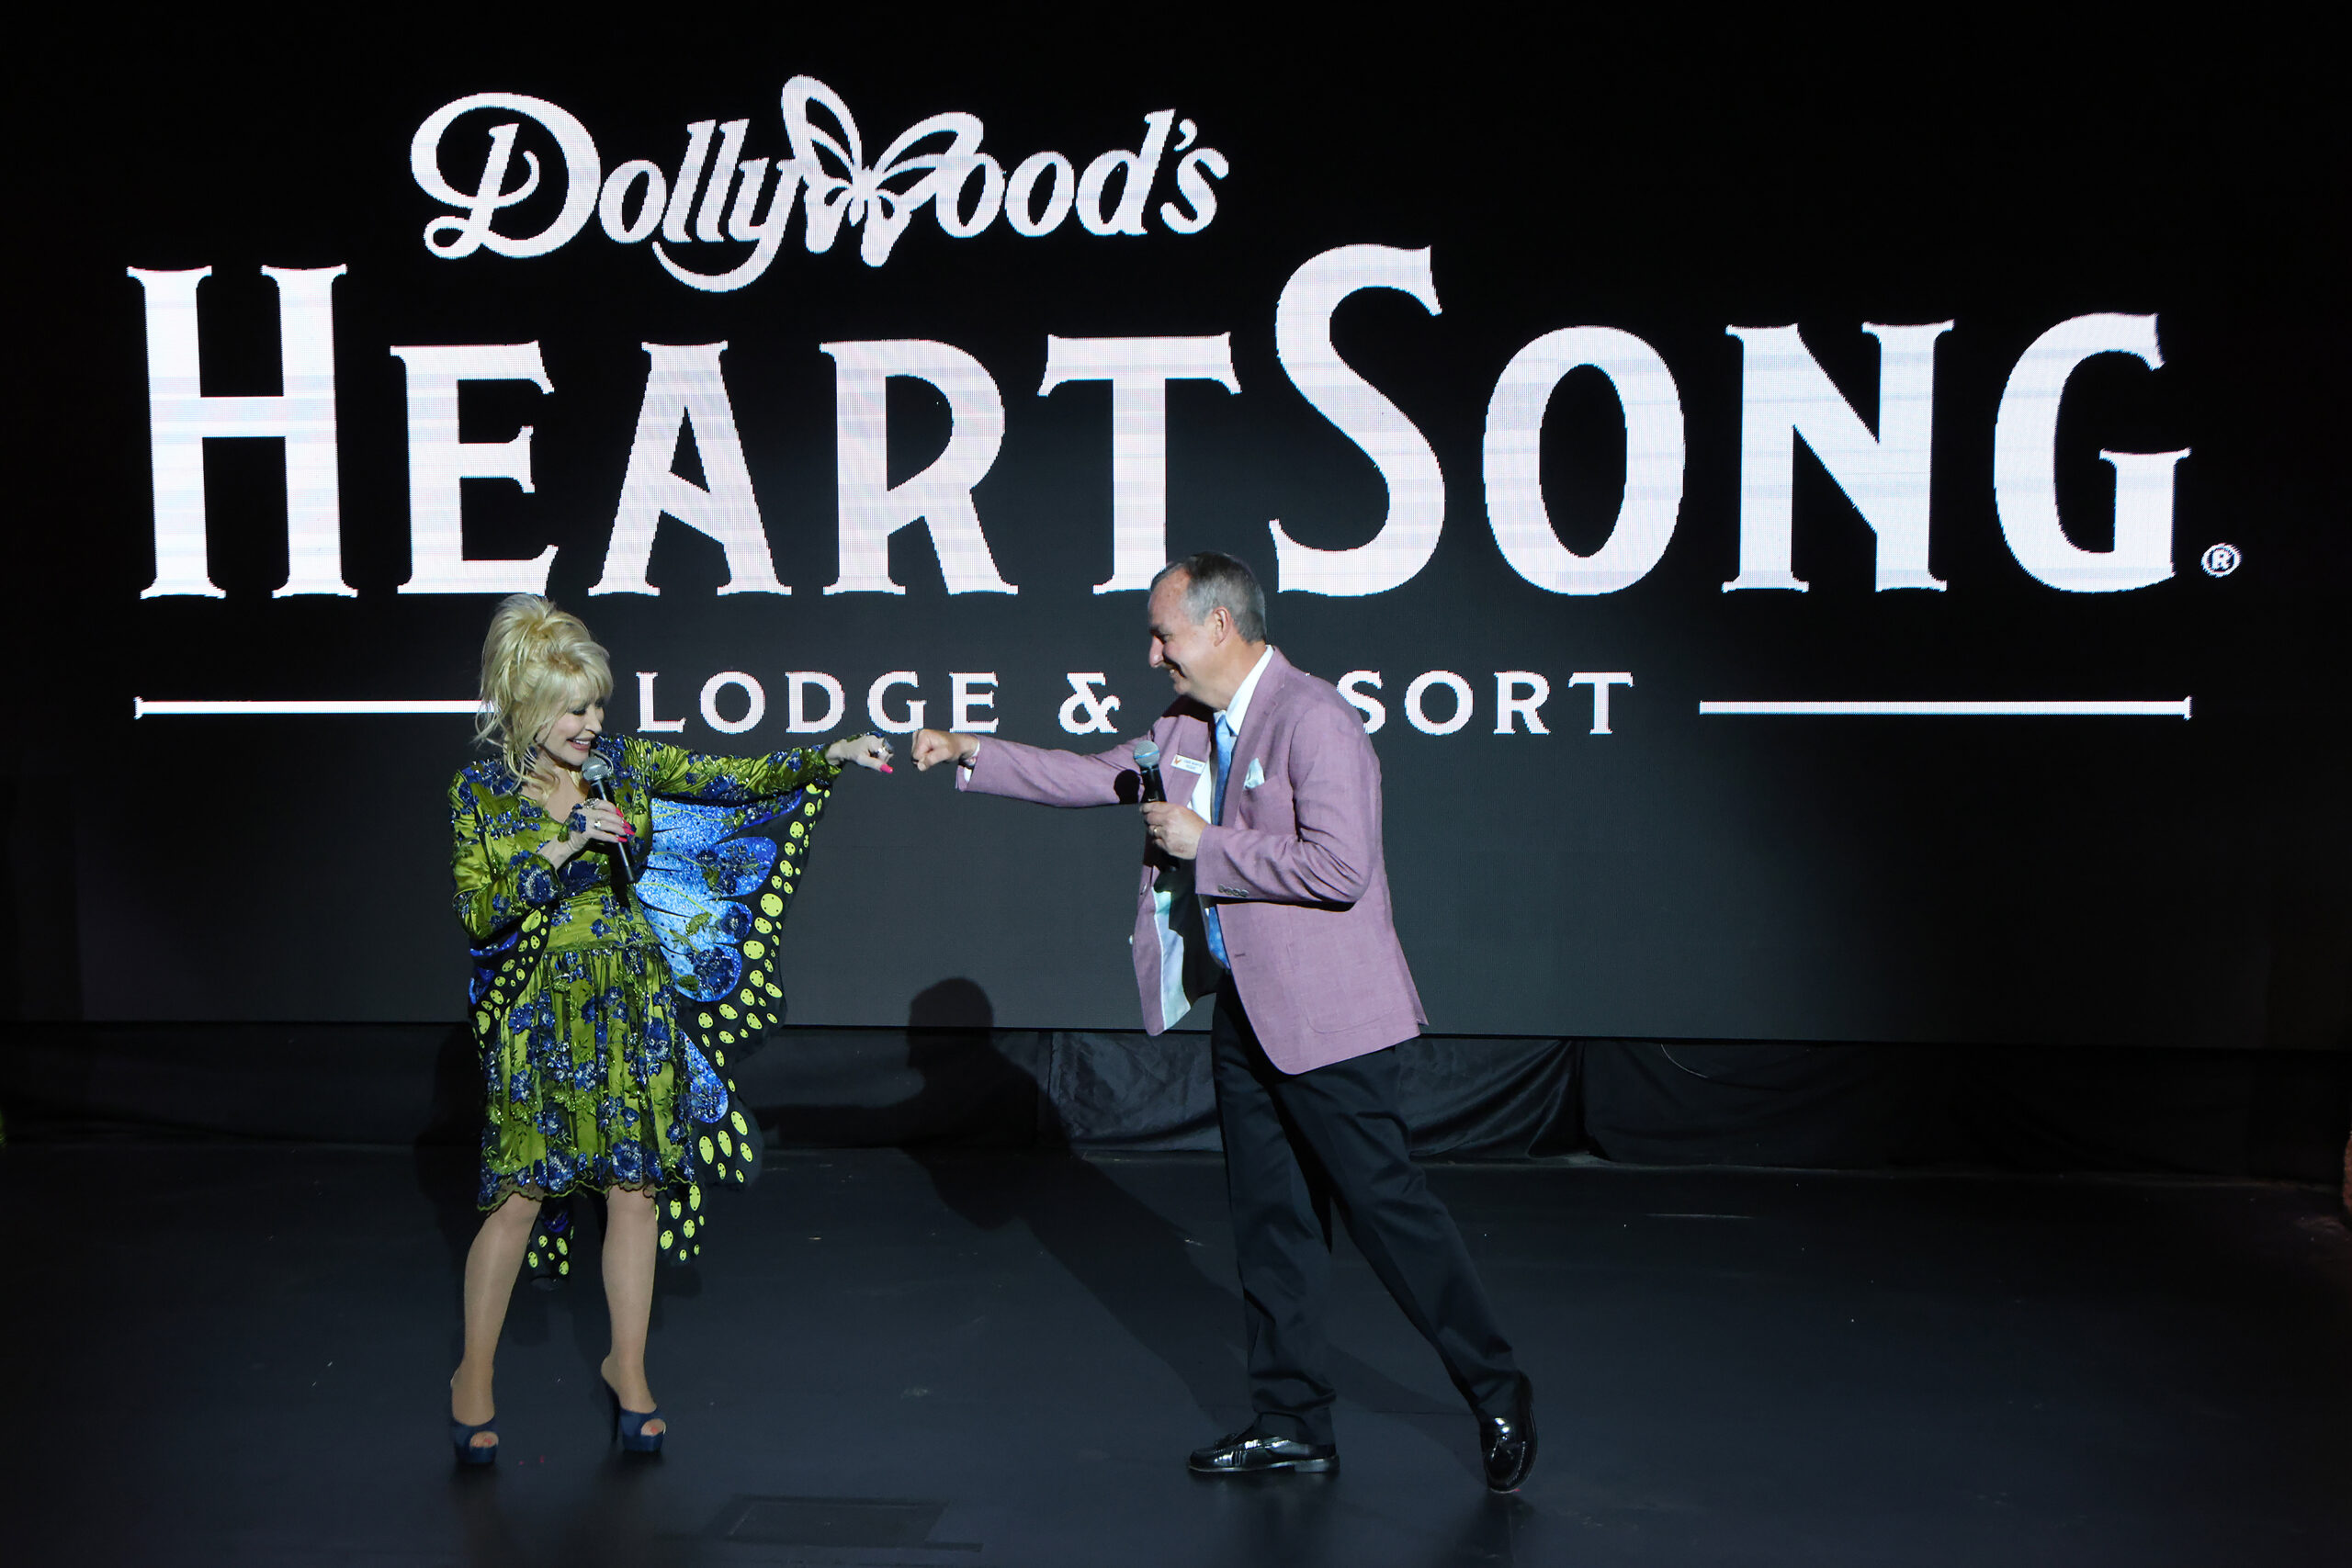 Dolly Parton's Dollywood Announces New Resort Property - HeartSong Lodge & Resort 1